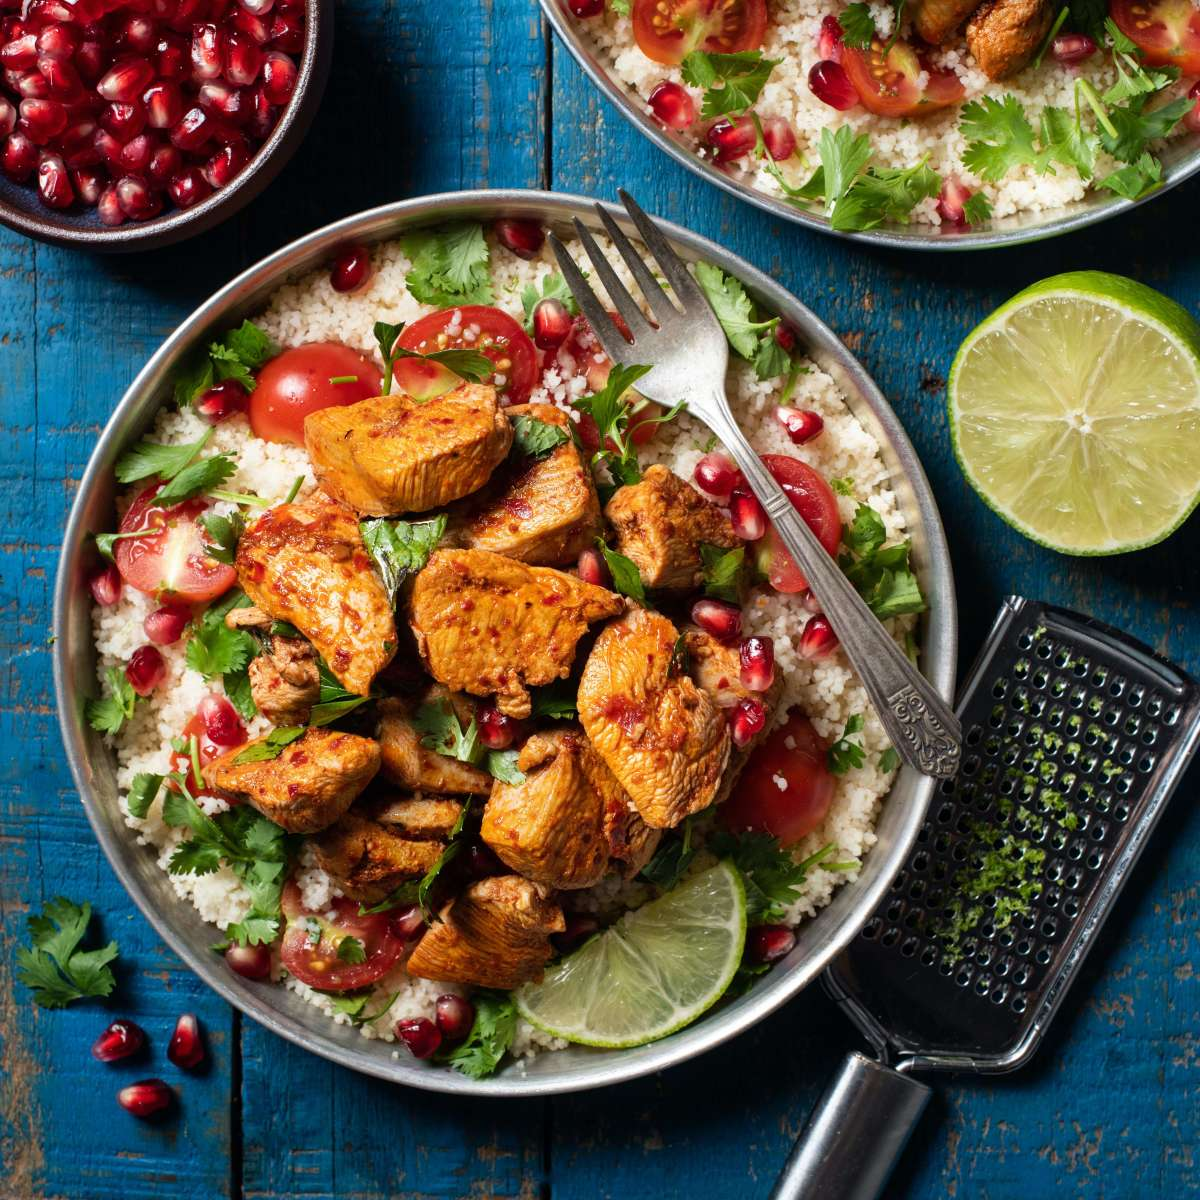 POMEGRANATE CHICKEN AND COUSCOUS SALAD1